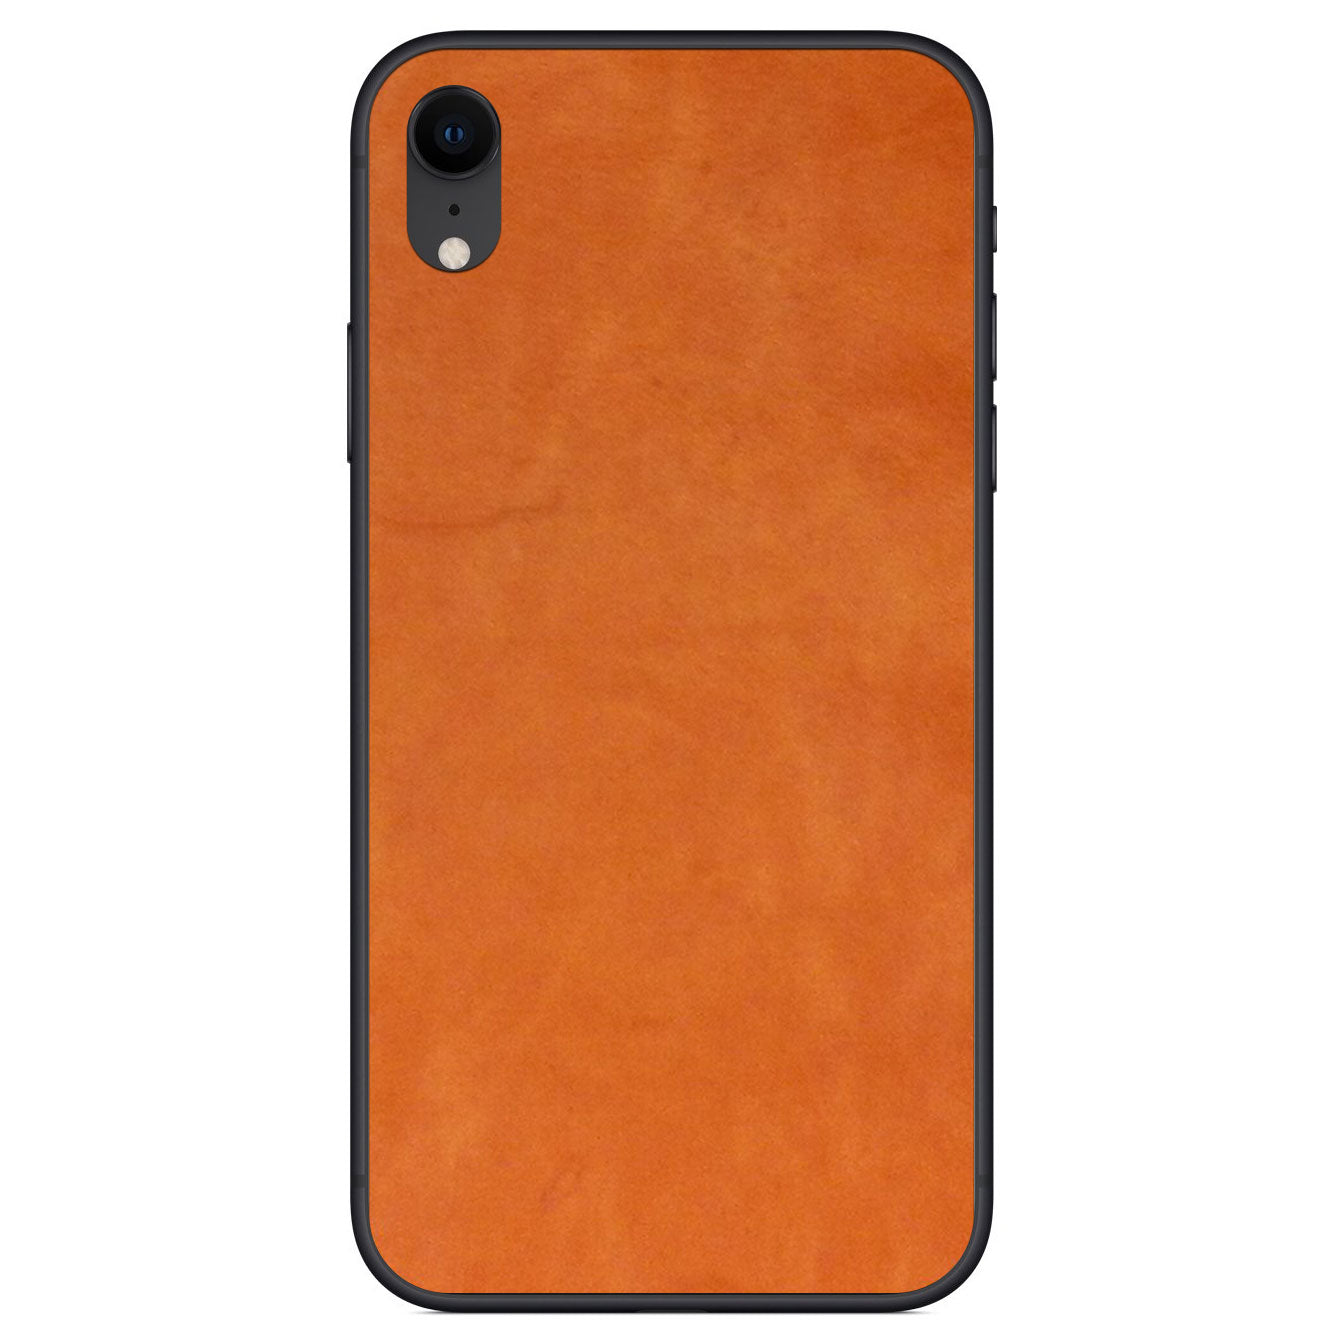 Brandy iPhone XR Leather Skin